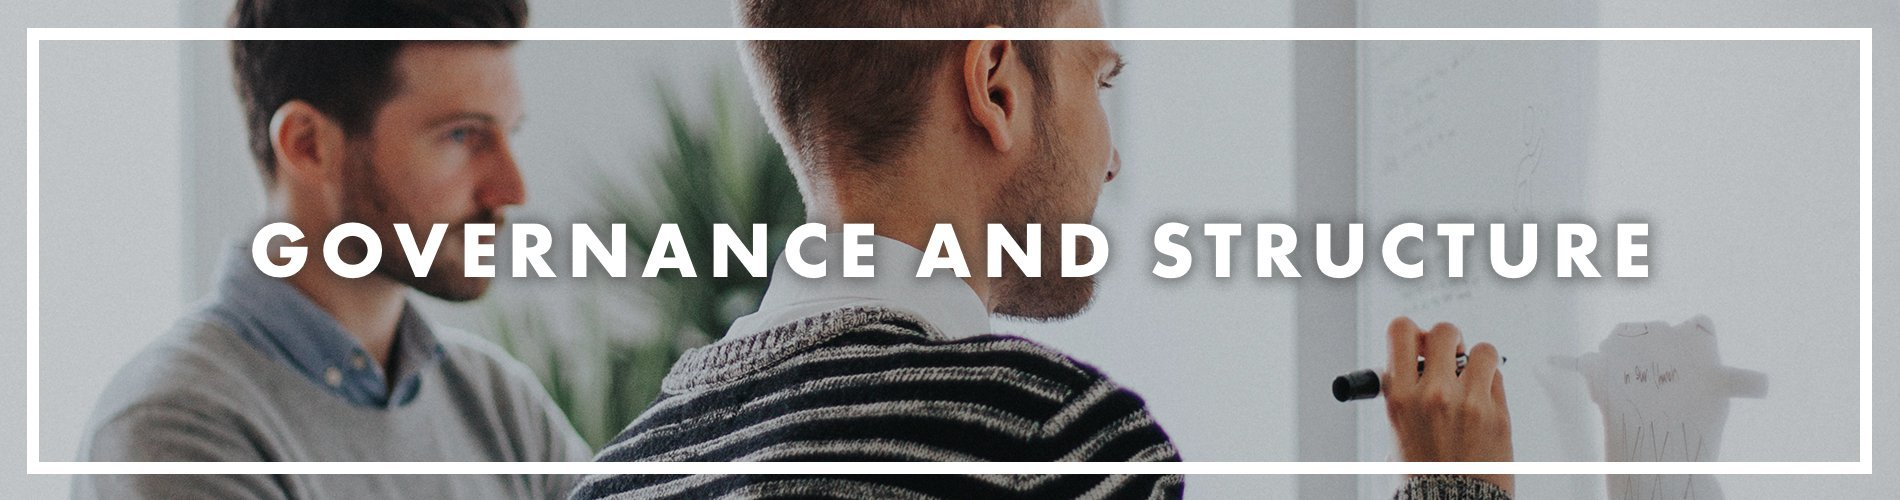 Governance and Structure banner